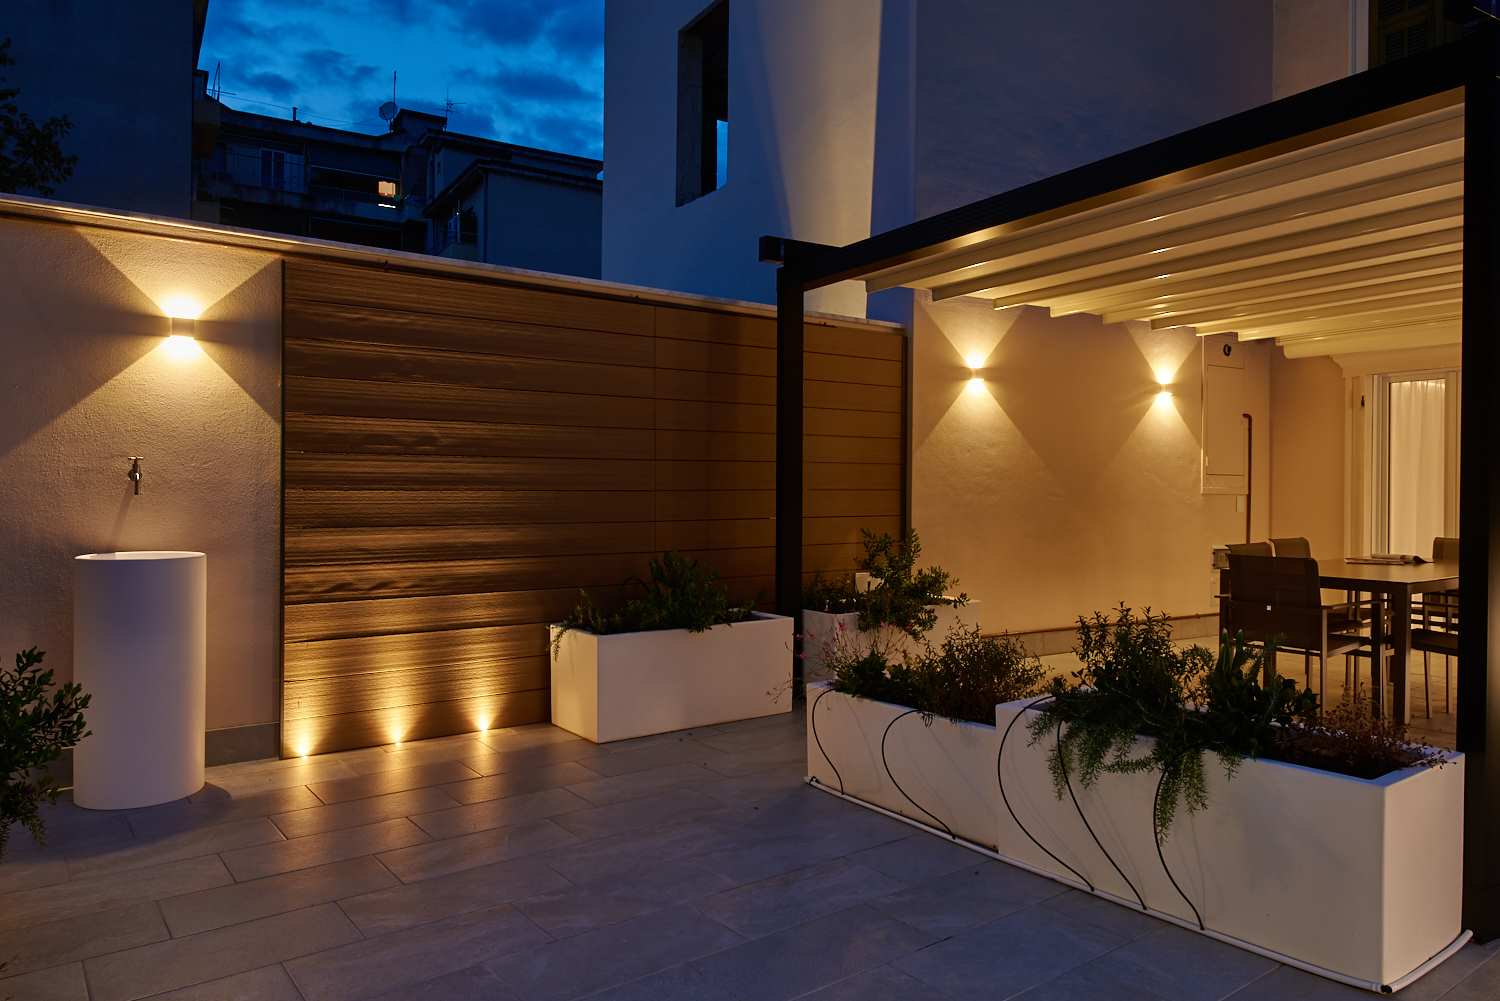 Come arredare con le luci led illuminazione nel 2019 t for Luci a led per casa